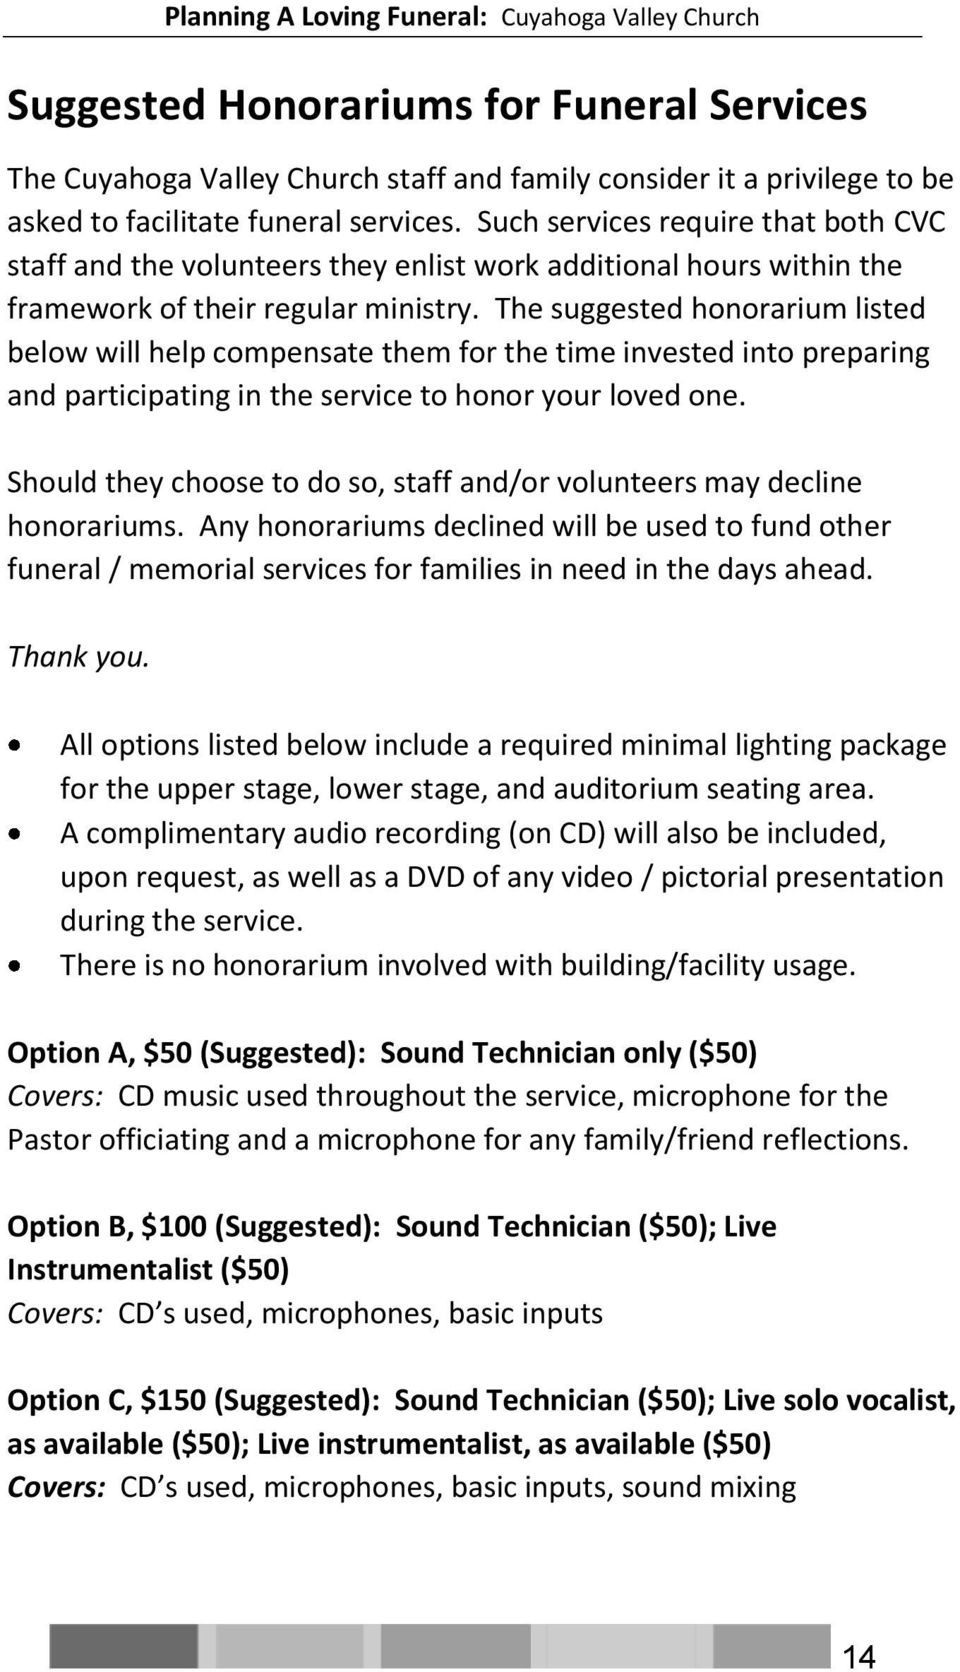 The suggested honorarium listed below will help compensate them for the time invested into preparing and participating in the service to honor your loved one.